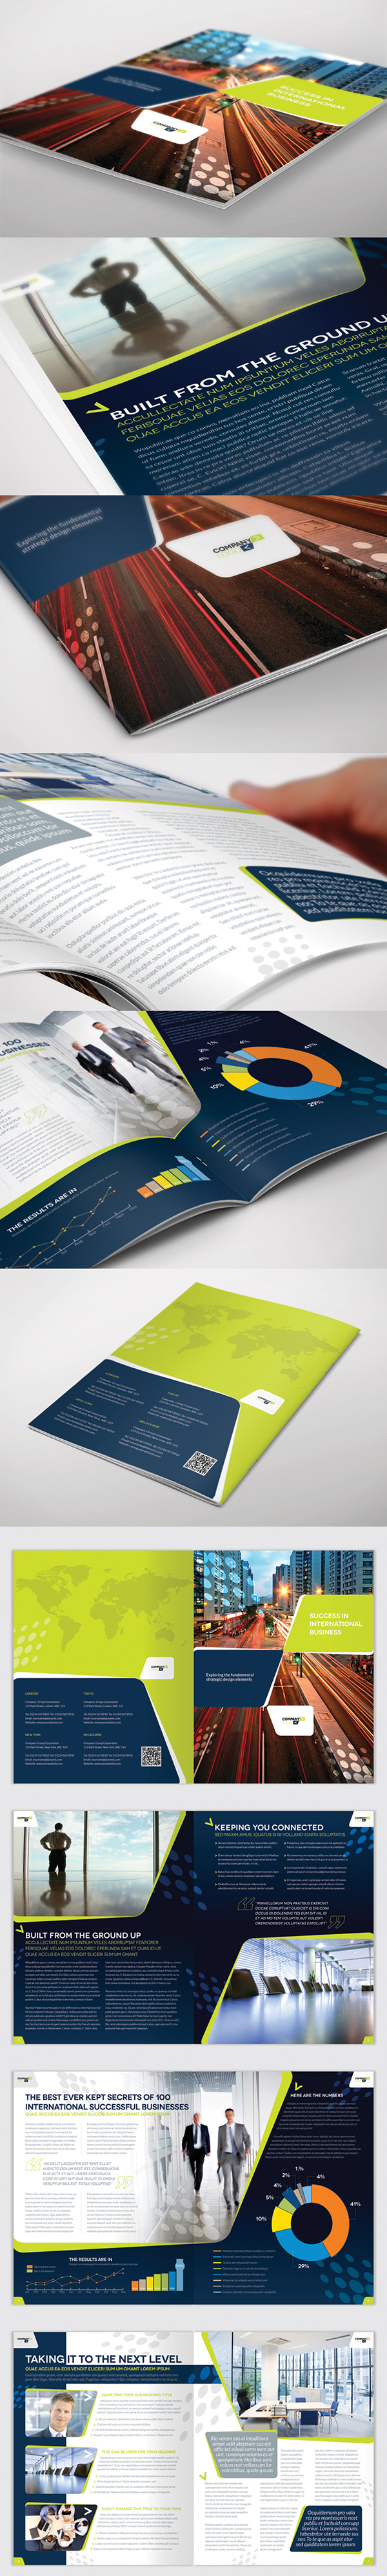 Brochure Template - InDesign 8 Page Layout 03 on Behance | Brochure ...